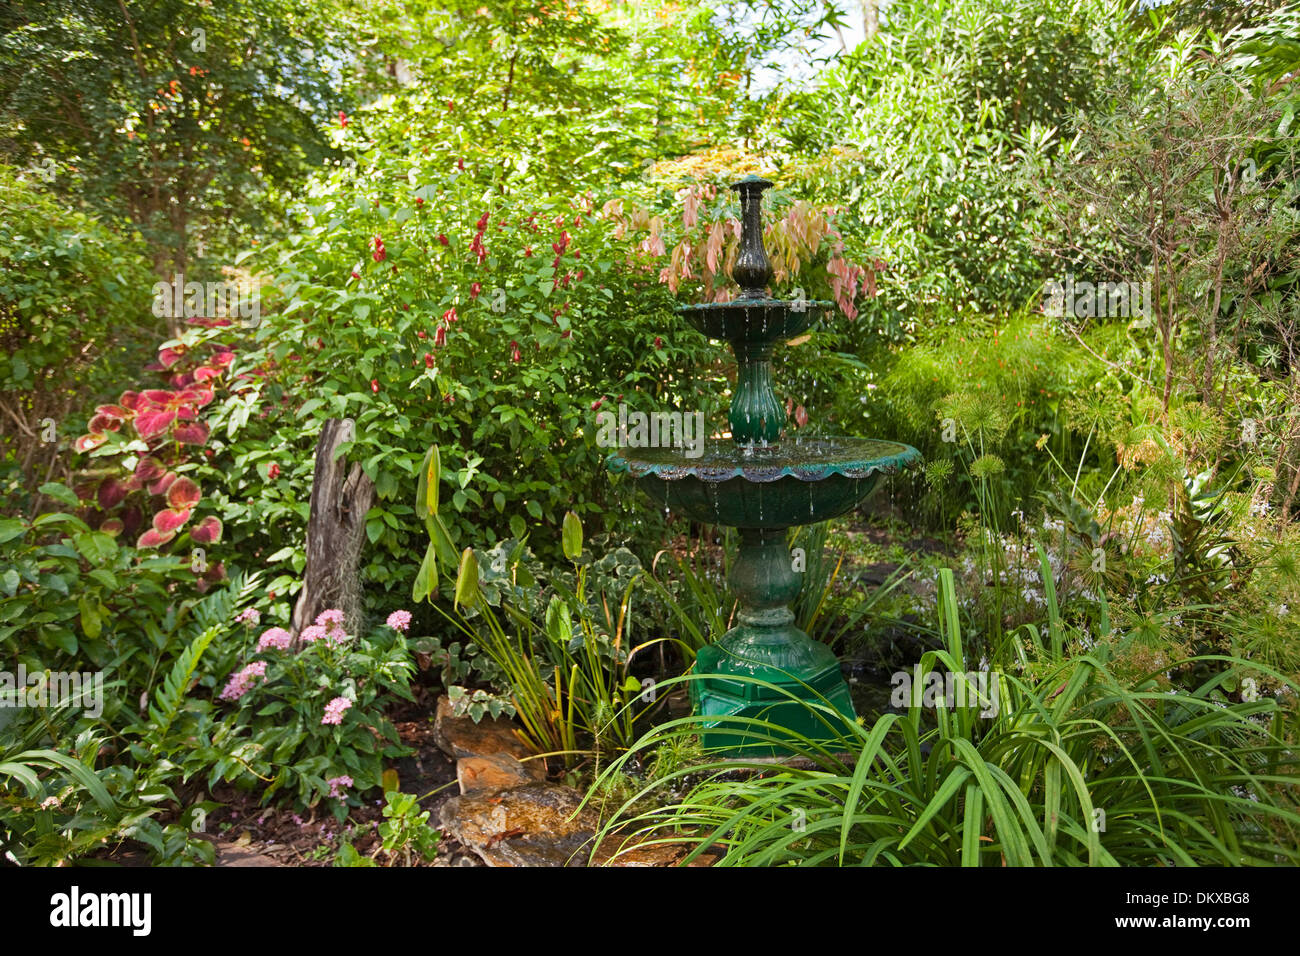 spectacular lush sub-tropical garden with decorative fountain